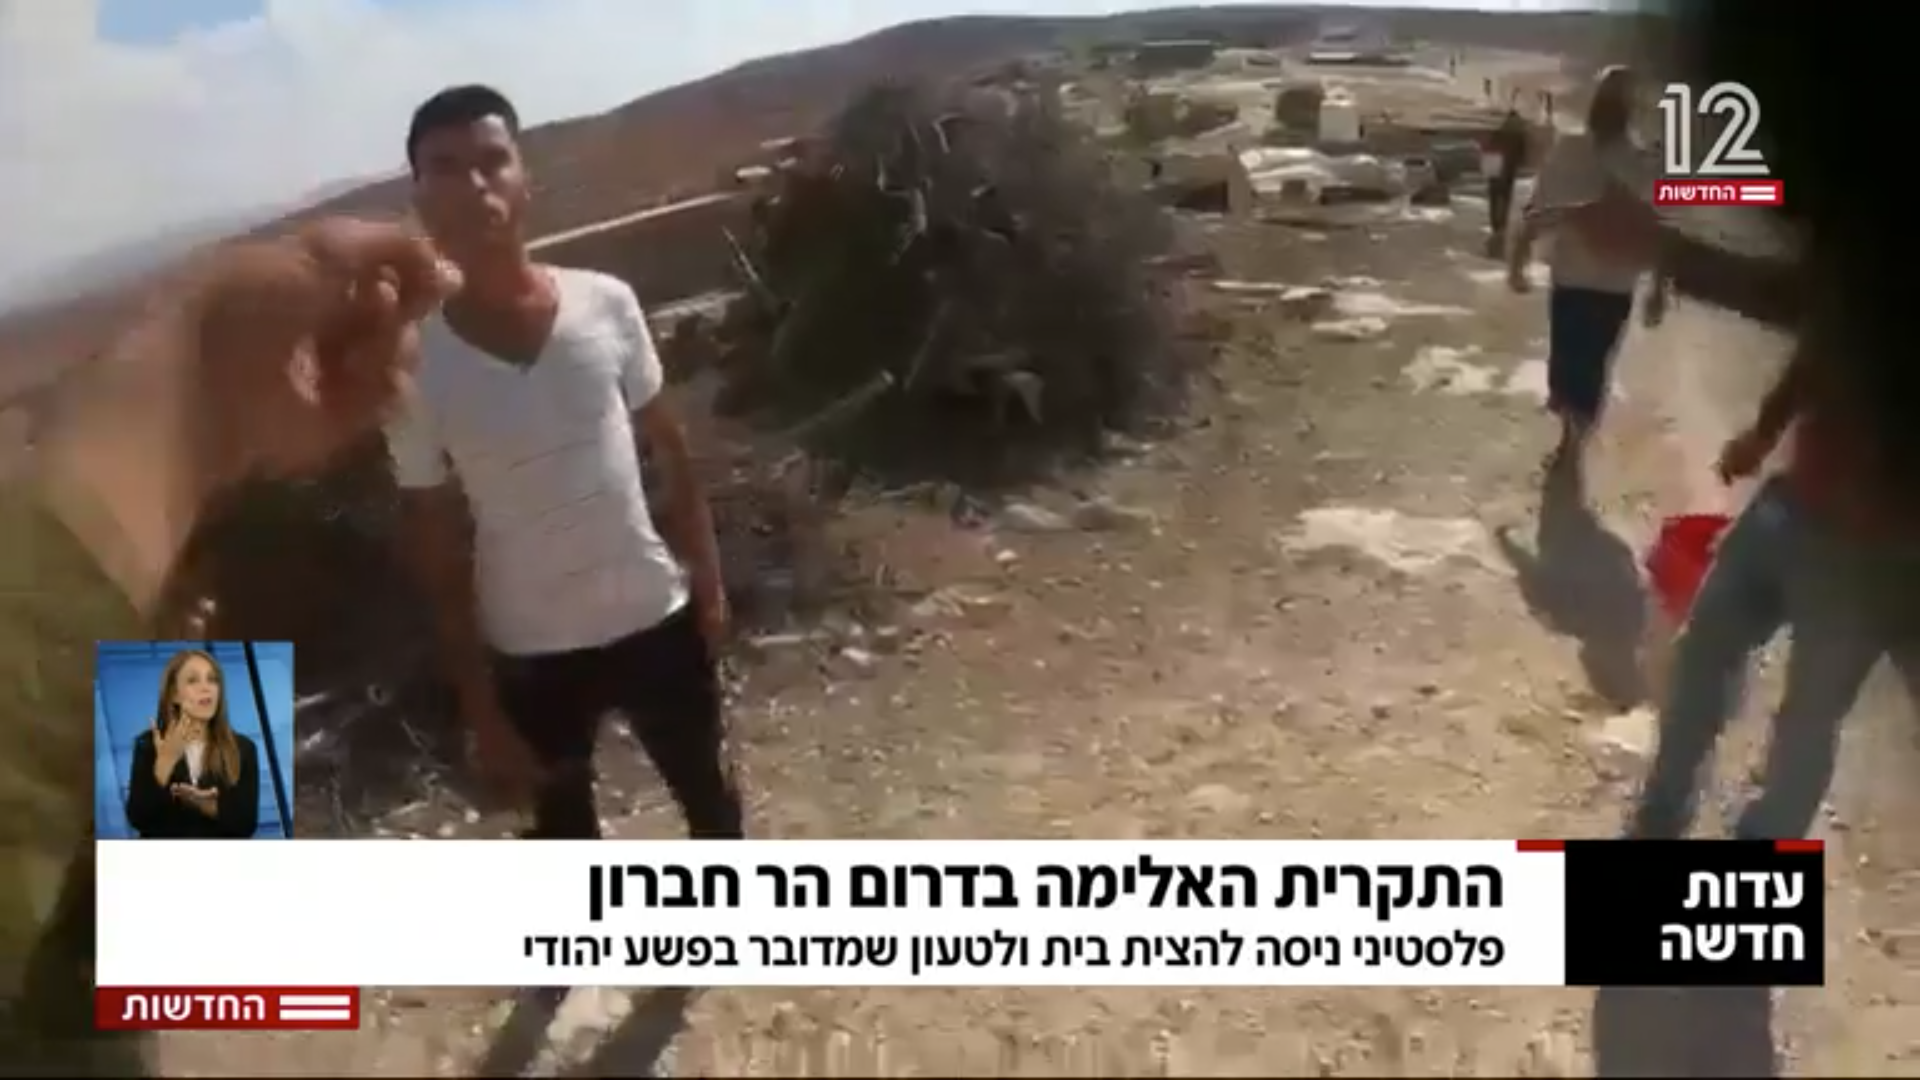 A screenshot from Channel 12 News shows an Israeli army officer accusing +972 writer Basil al-Adraa of deliberately setting fire to a Palestinian structure and trying to blame it on settlers. (Channel 12 News)